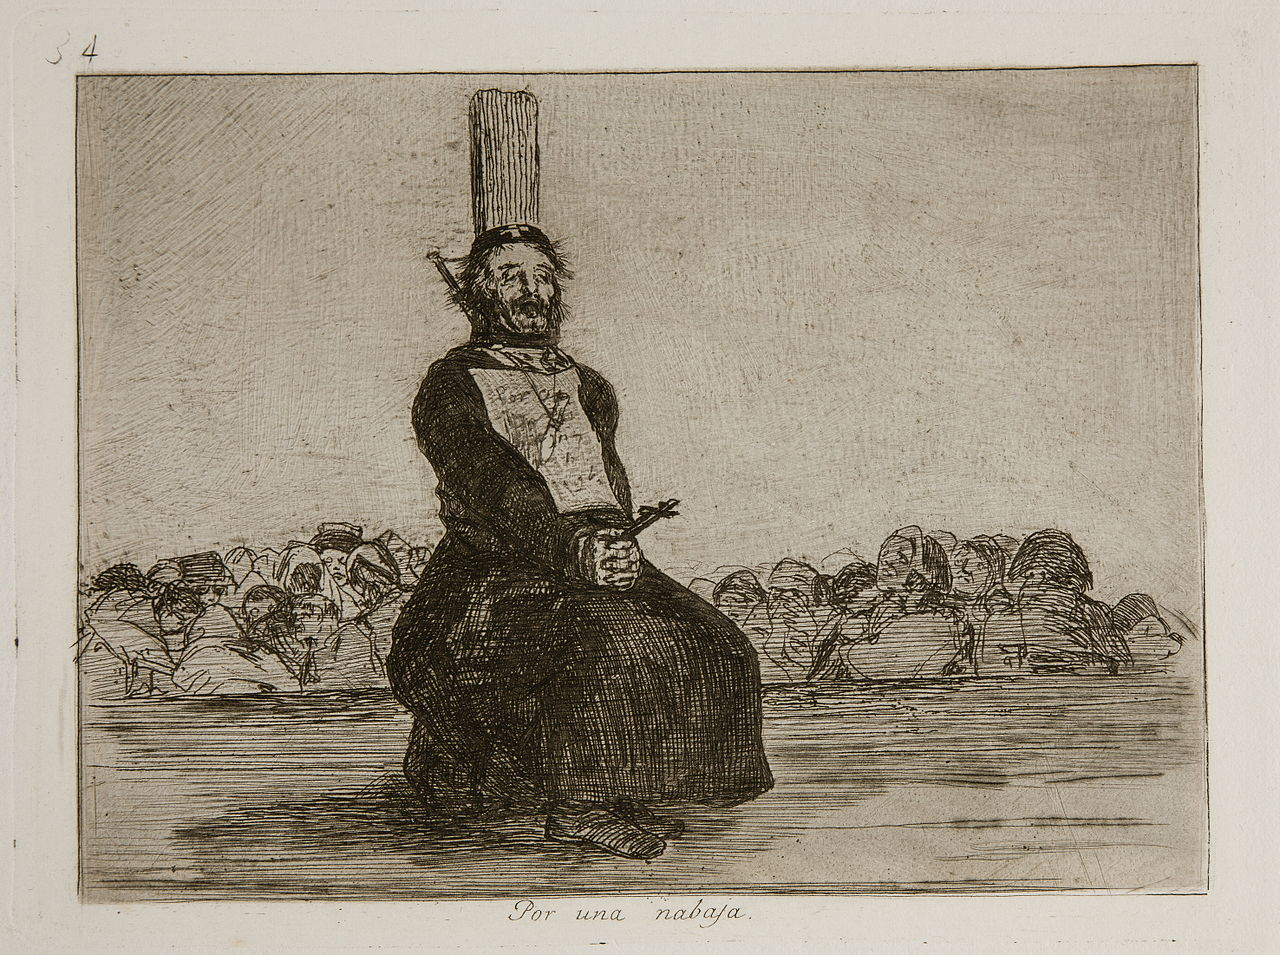 goyas disasters of war Enrique chagoya, goya conoce a posada (goya meets posada) from homage to goya ii: the disasters of war (1987, published 2003), etching with aquatint and red rubber stamp, image 6 3/4 x 8 1/2 inches, sheet 13 x 15 inches edition of 30.